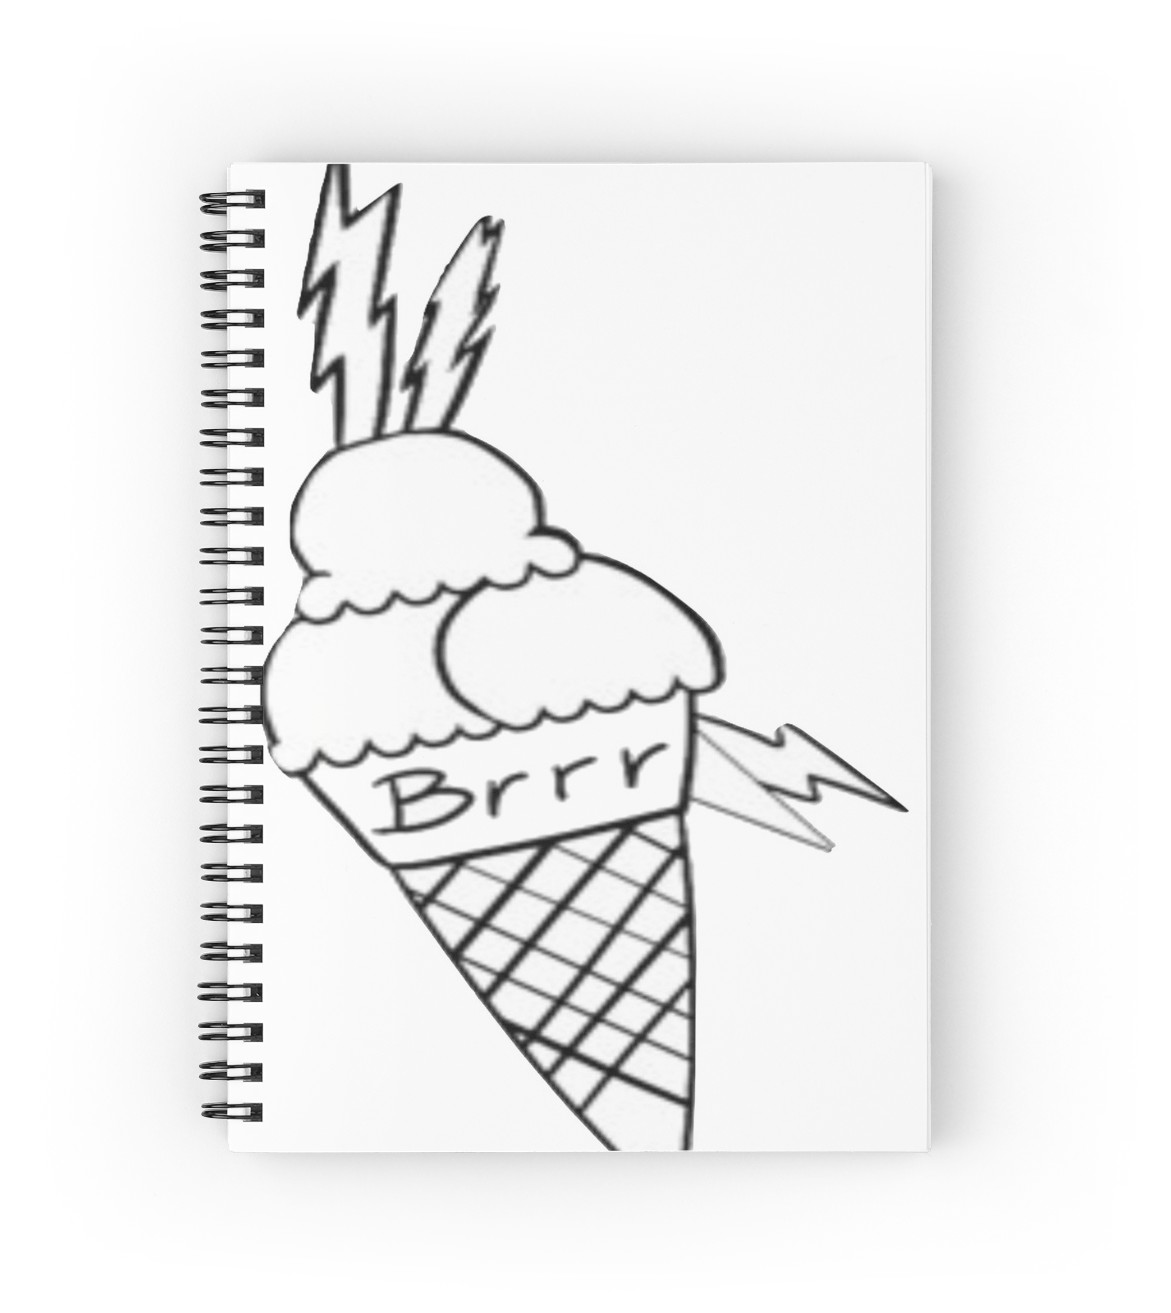 1171x1313 Gucci Mane Brrr Ice Cream Face Tattoo Spiral Notebooks By